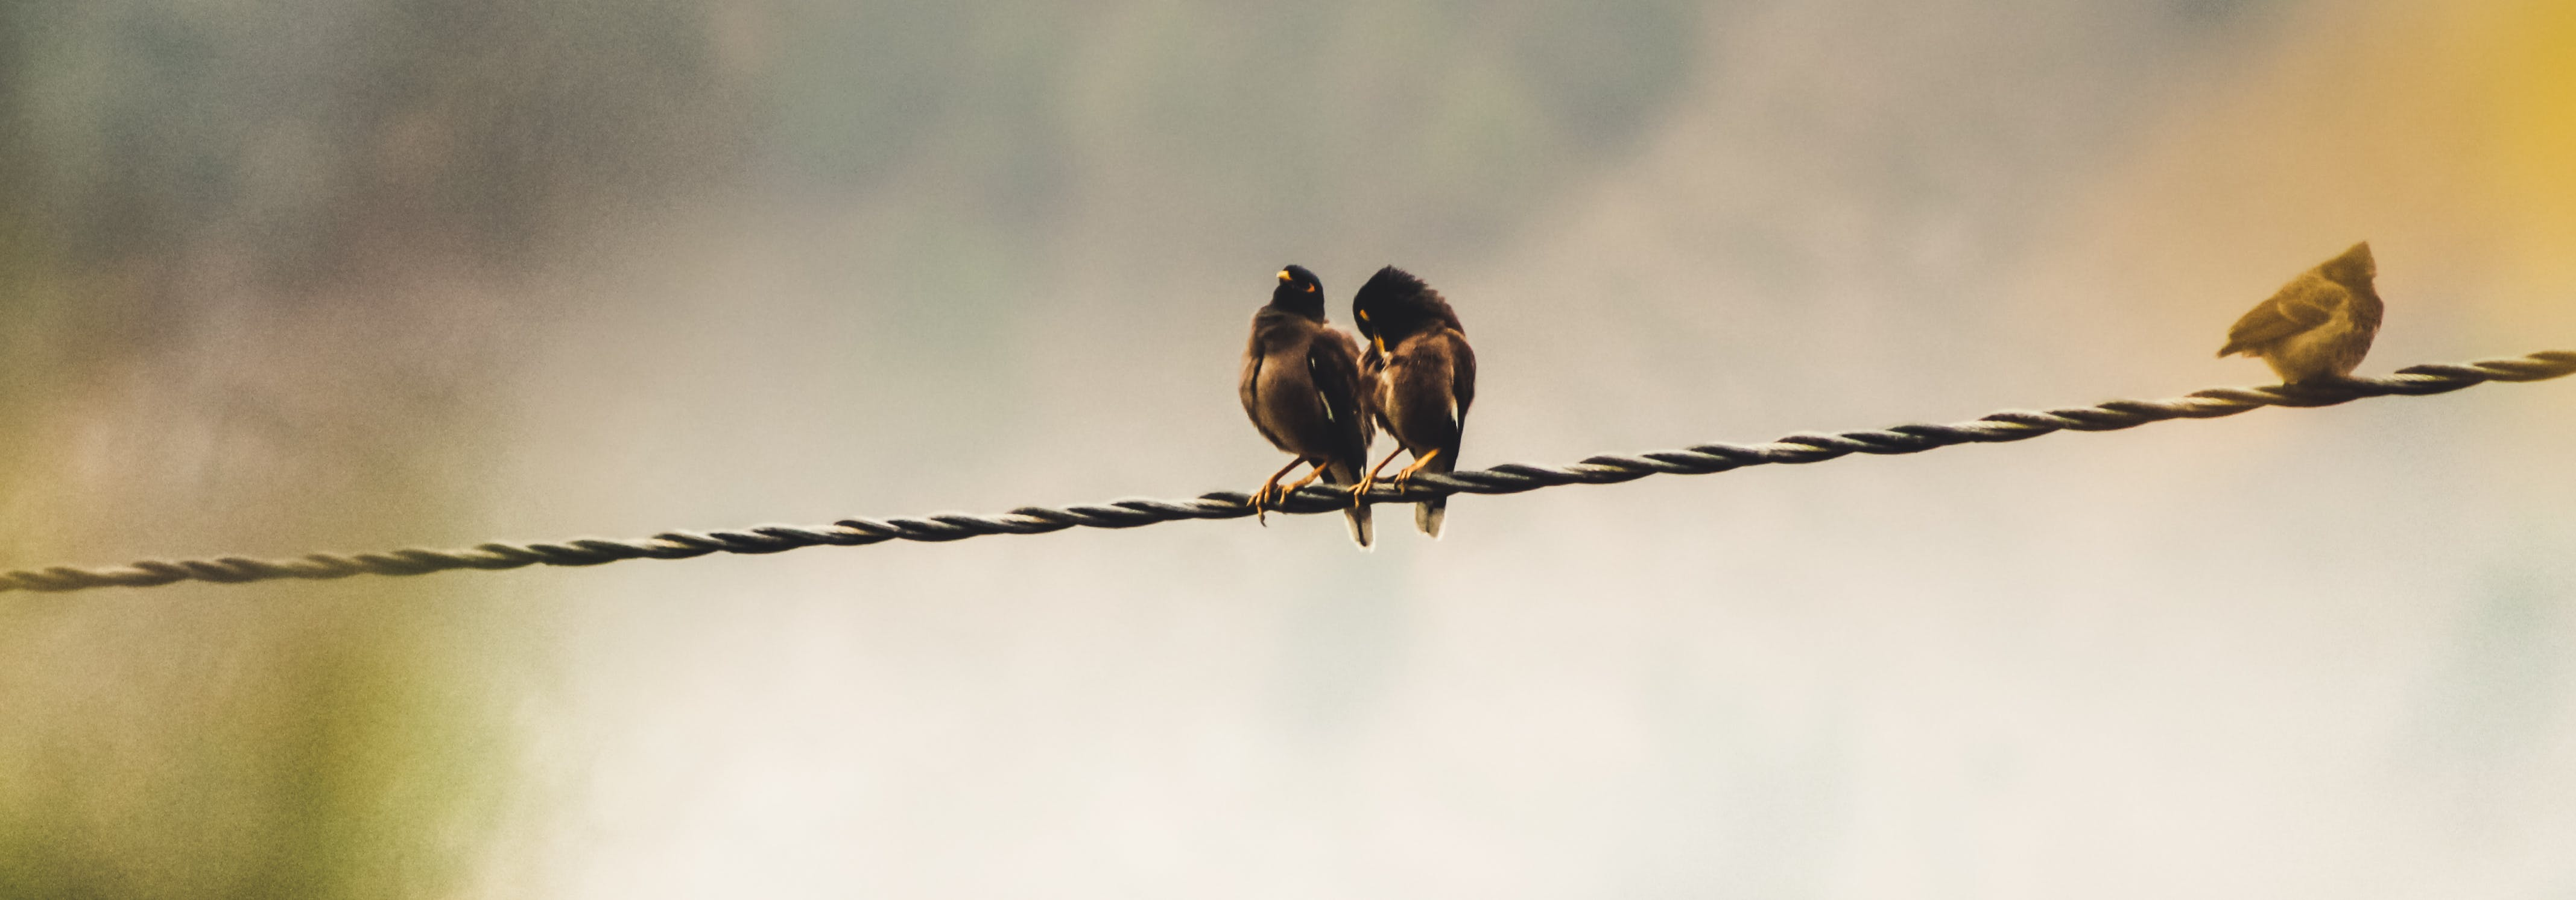 Several Birds Perching on Cable